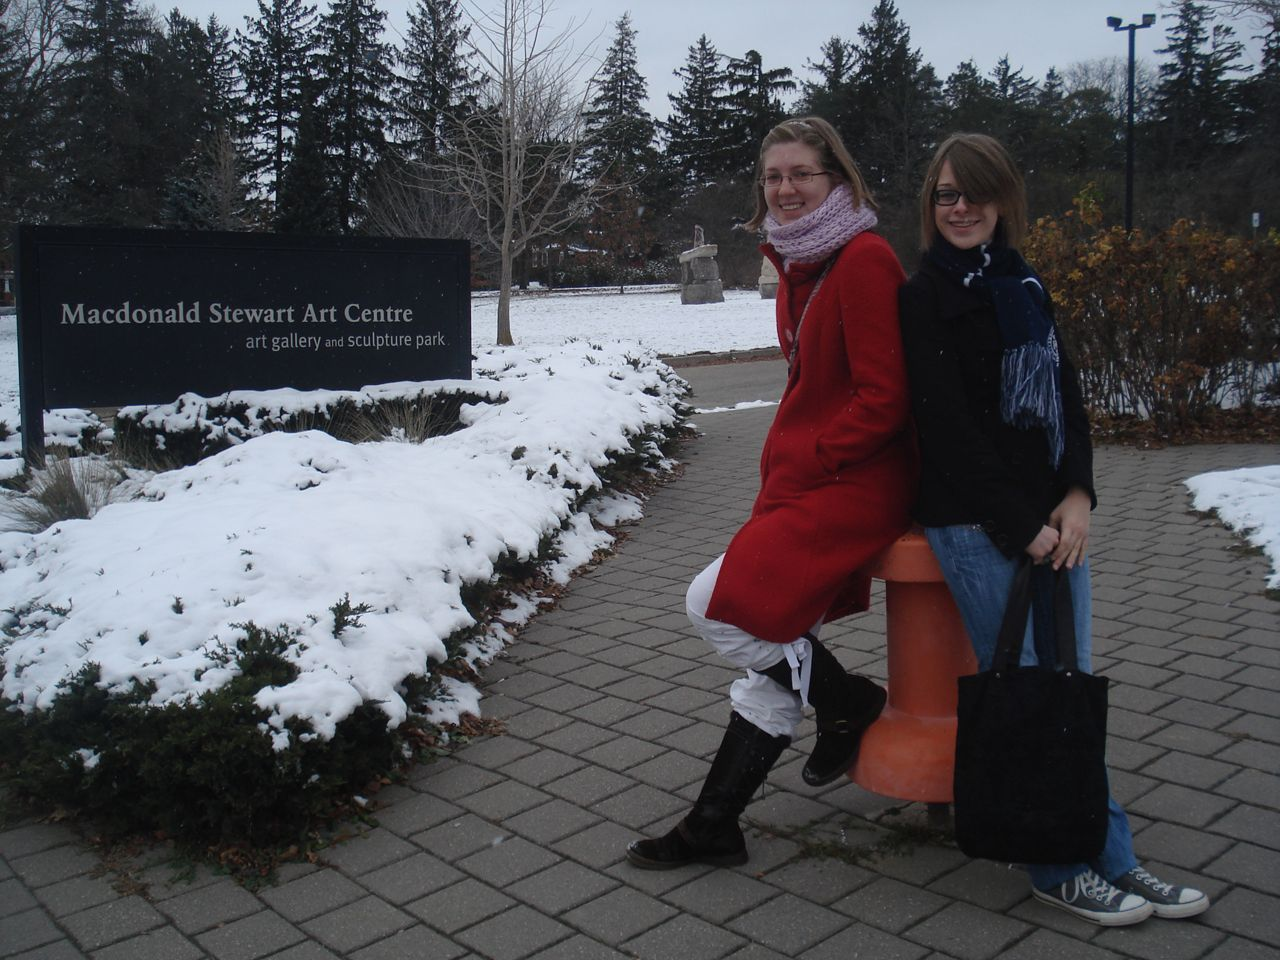 Students visit the MacDonald Stewart Art Centre, located on the North end of campus, behind Lennox-Addington.